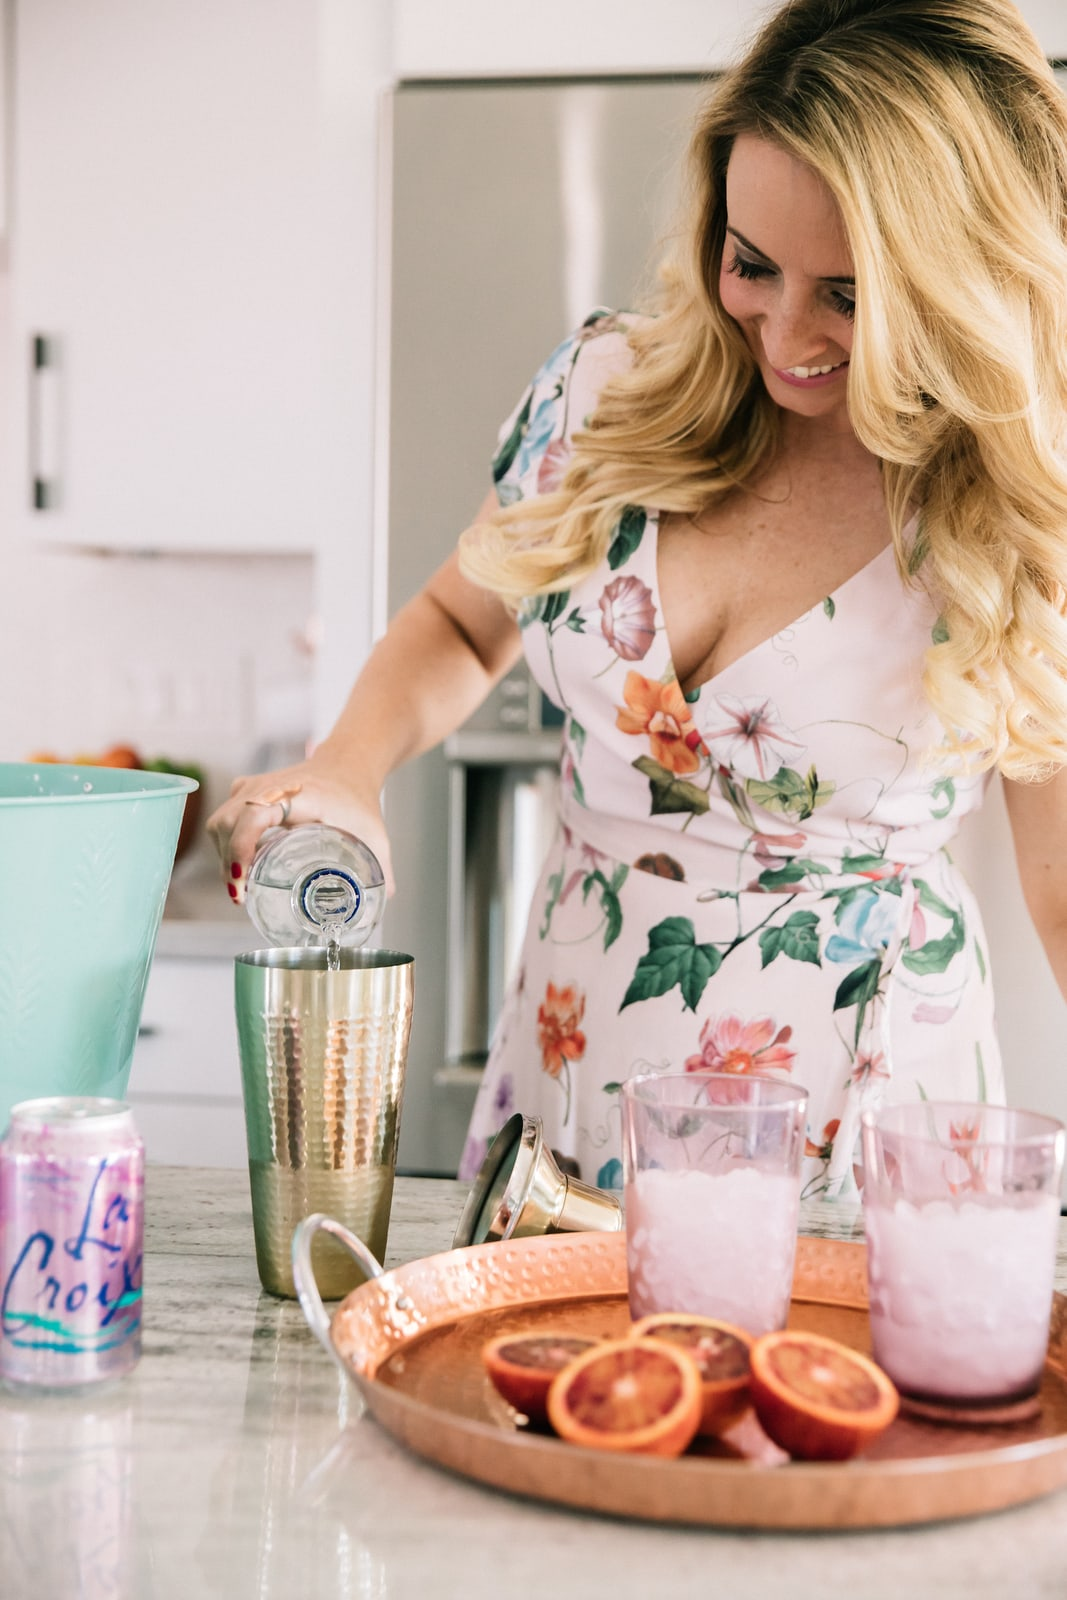 Whitney Bond making cocktails in kitchen with blood oranges, vodka and la croix